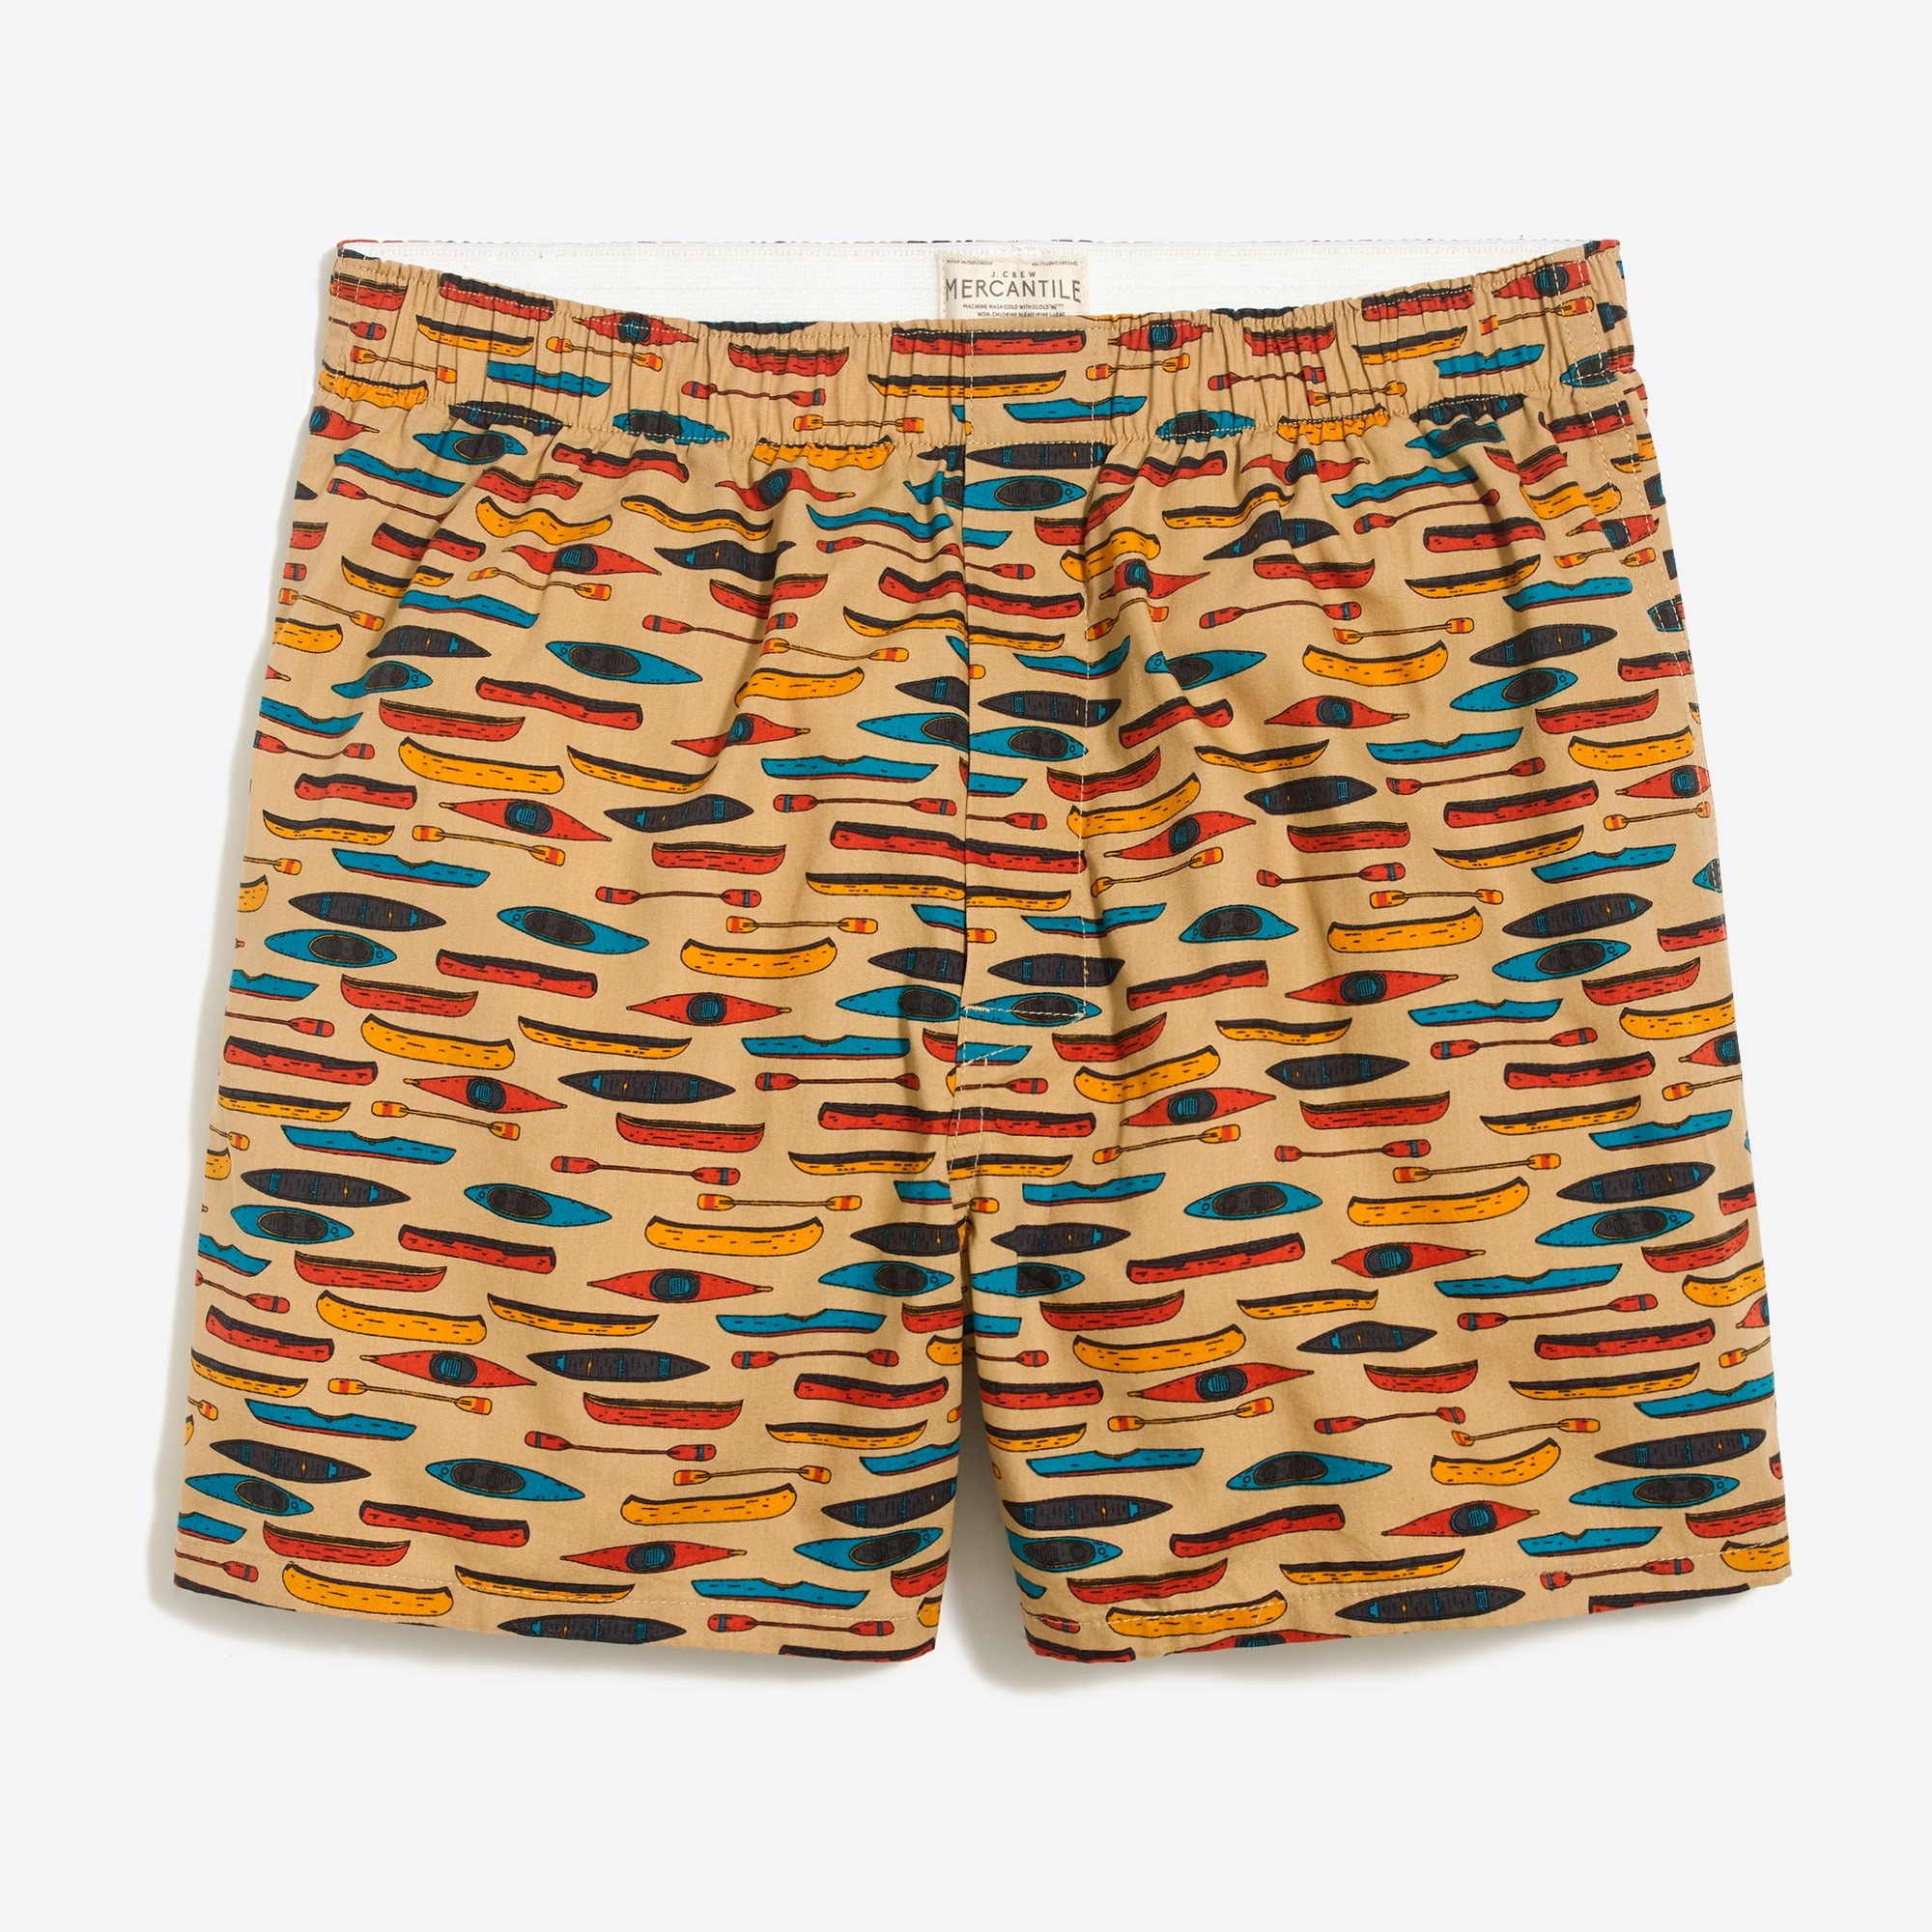 J.Crew Mercantile boxer in kayaks and canoes print